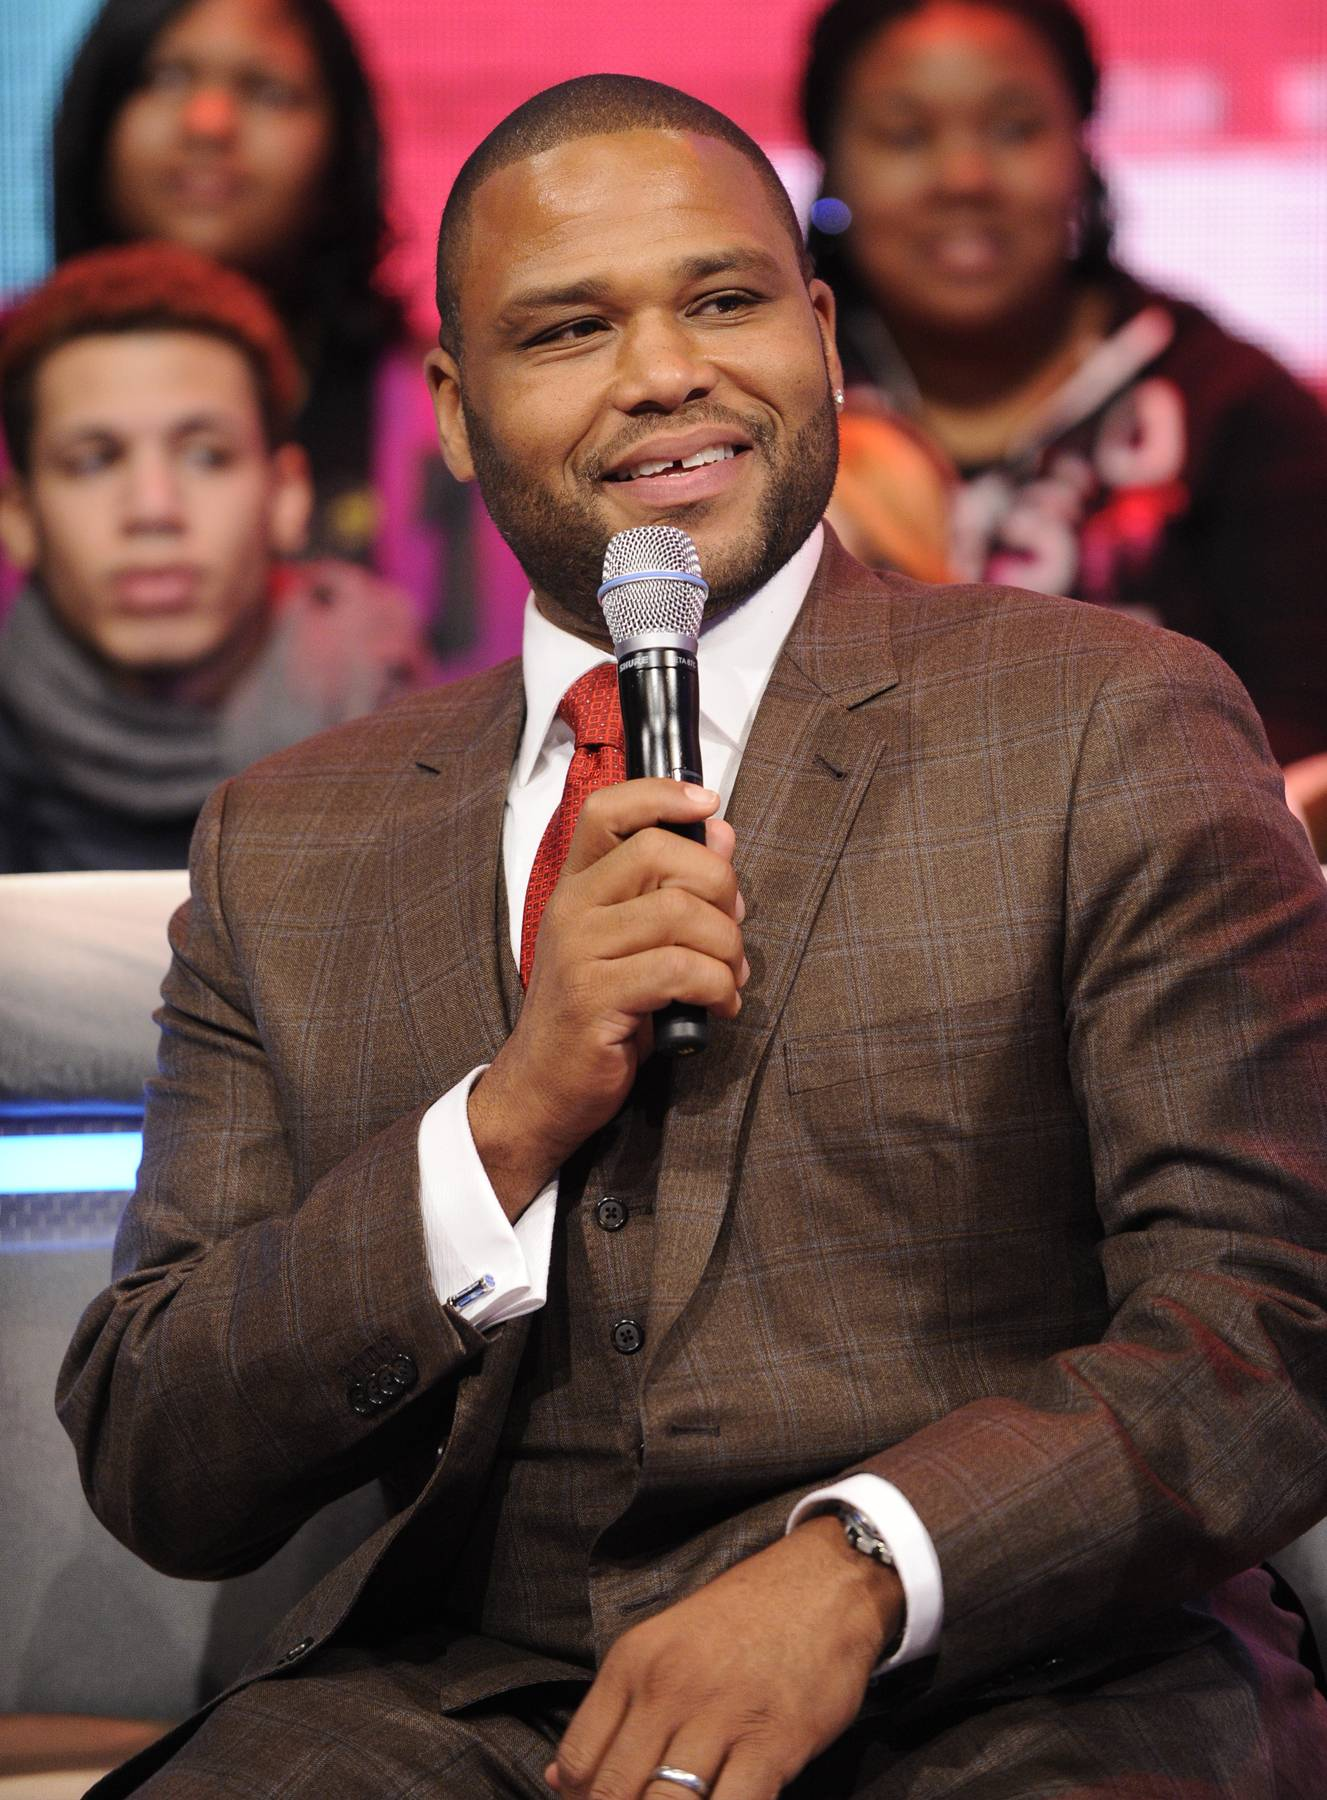 Big Things Poppin' - Ahead of hosting the 2013 Soul Train Awards, this year has proved a busy one for the Compton, California, native. He hosts Anthony Eats America and starred in The Power of Fewand TV Land'sSoul Man.(photo: John Ricard / BET)